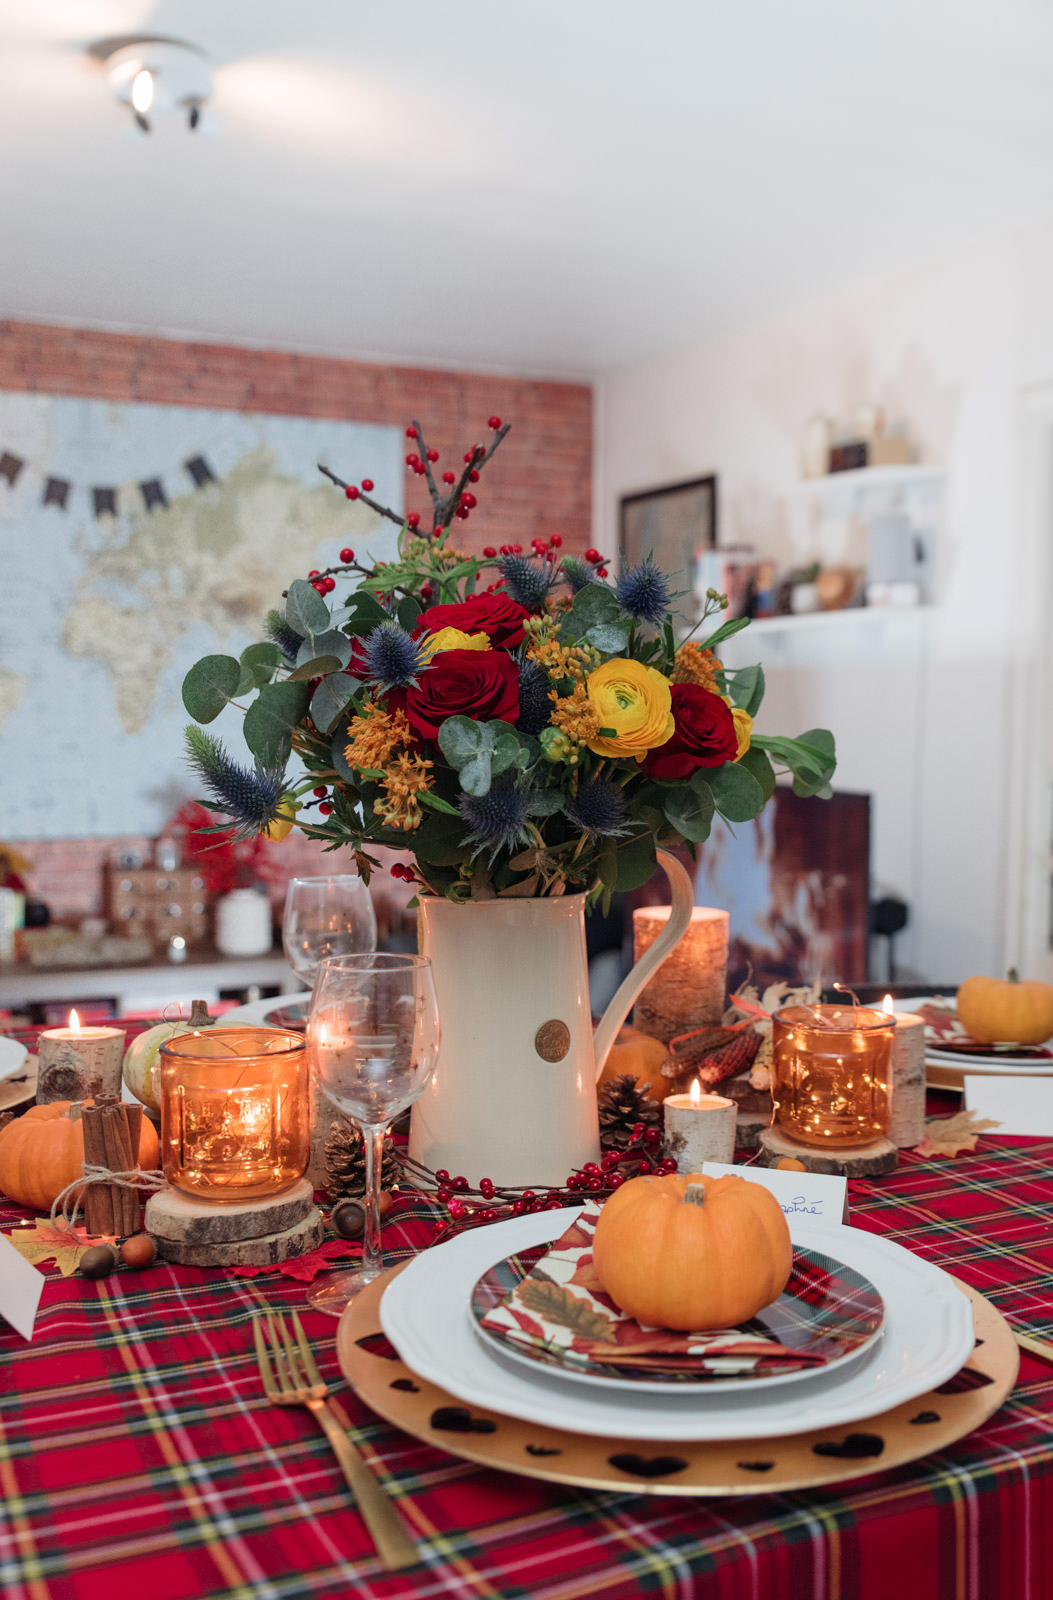 Blog-Mode-And-The-City-Lifestyle-Thanksgiving-2017-13